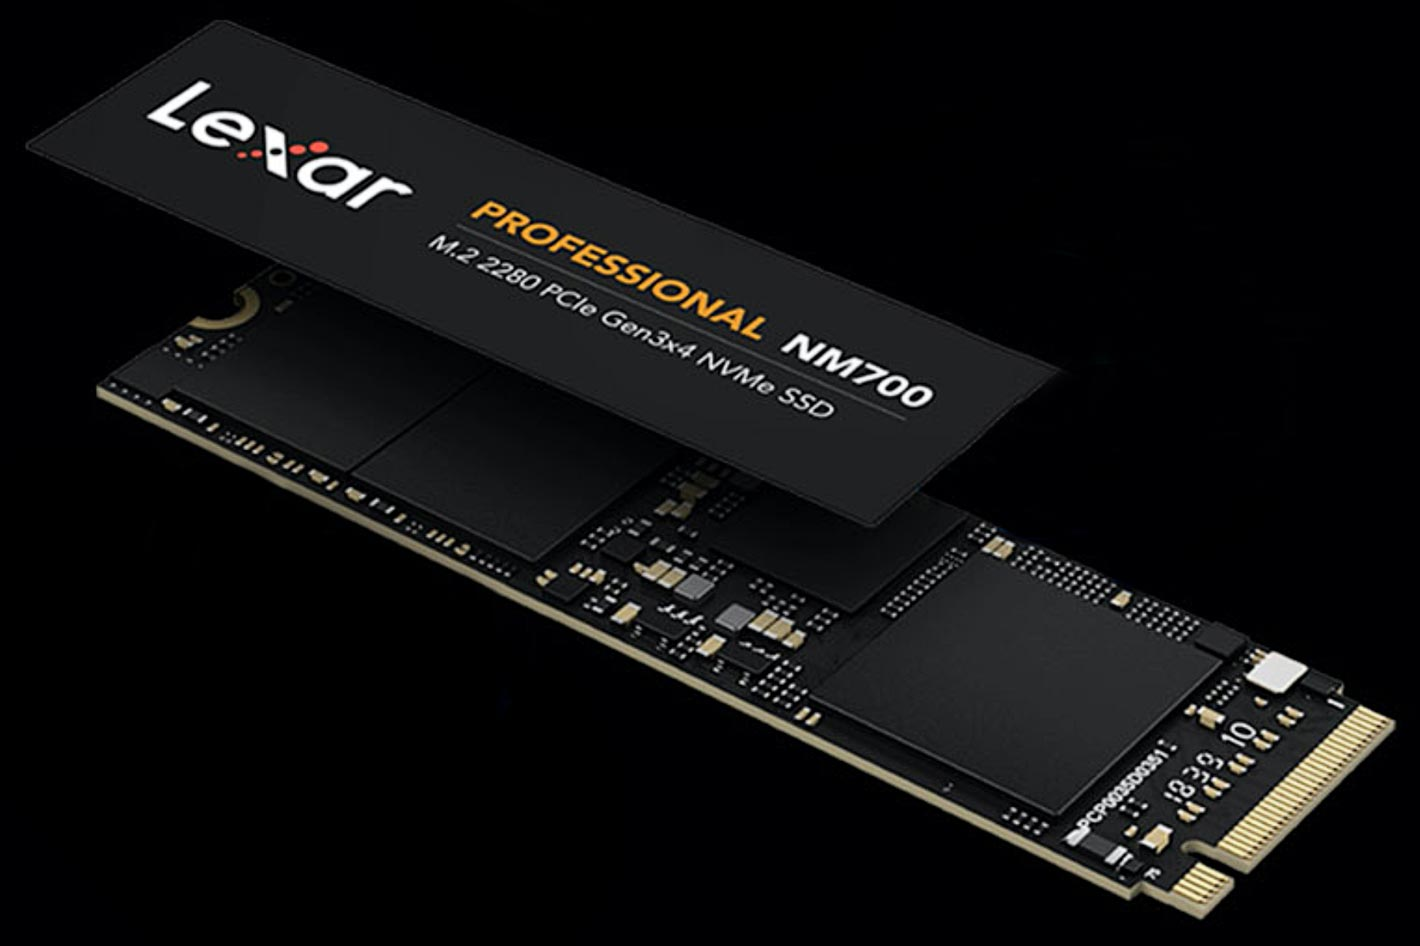 Lexar Professional NM700 M.2 2280: 6.5x faster than a SATA based SSD